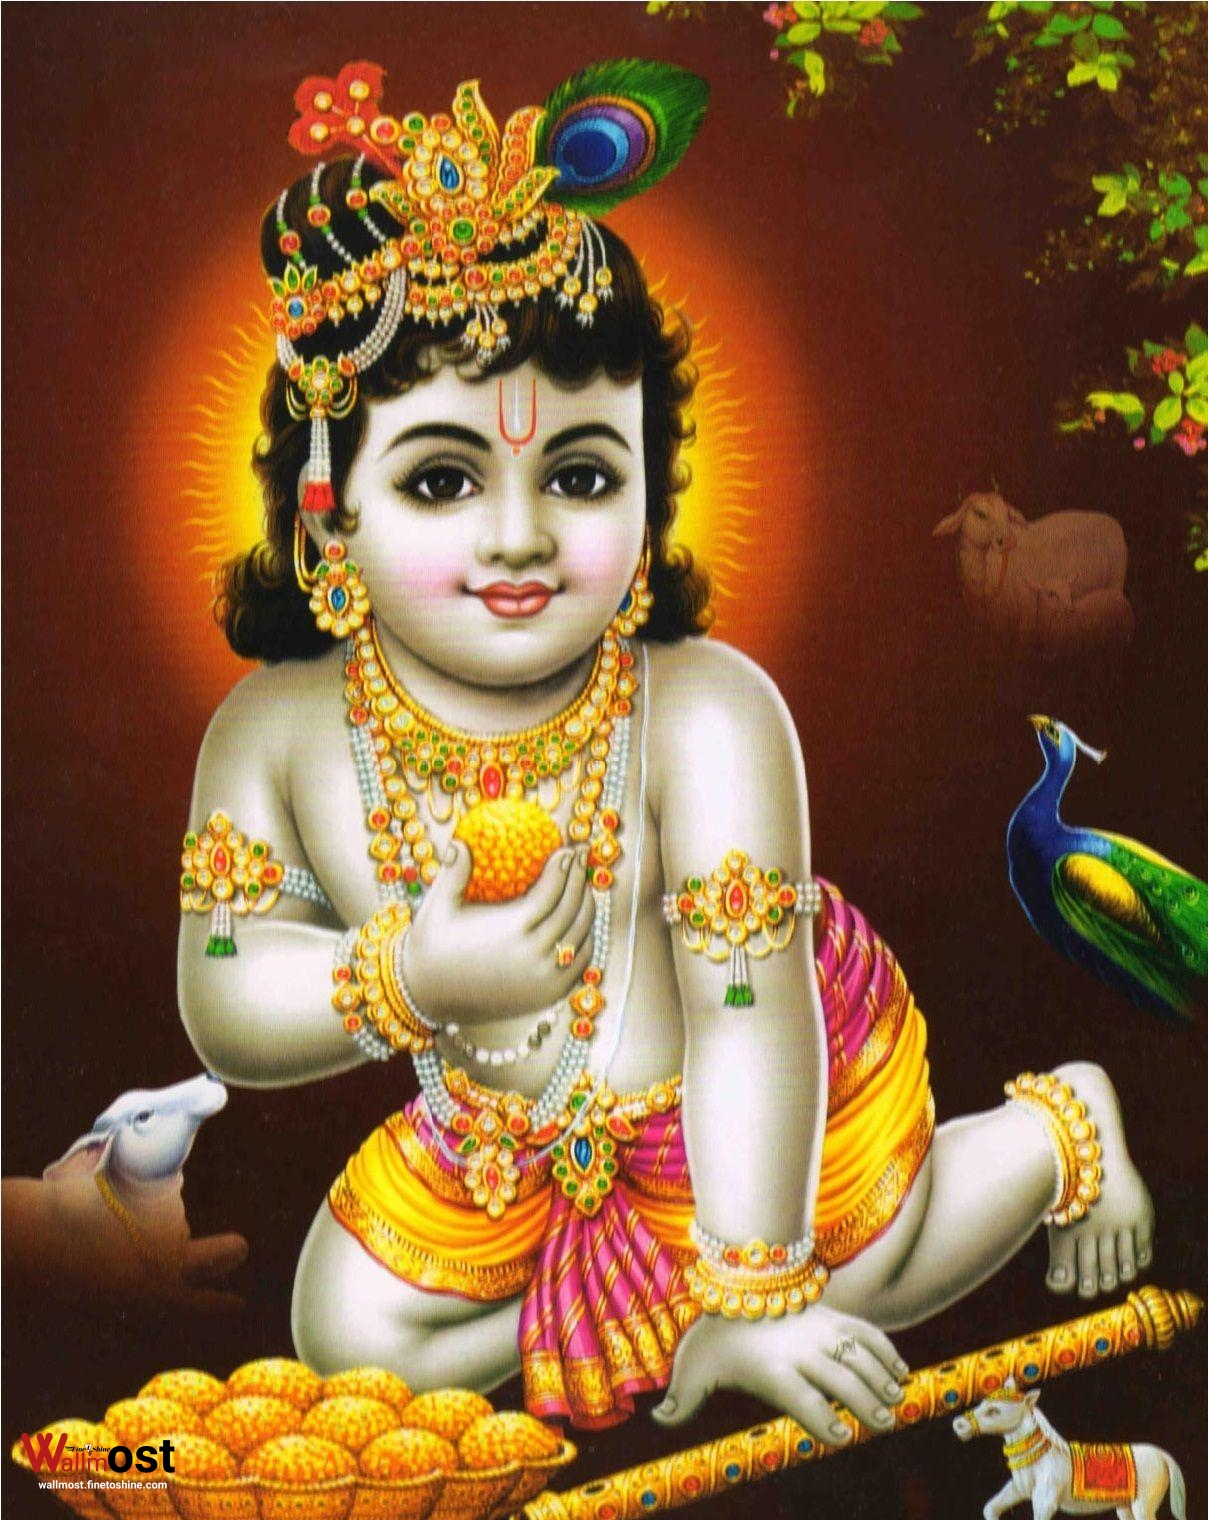 Krishna Wallpapers {New} Images, Photos &Amp; Pictures - Wallmost